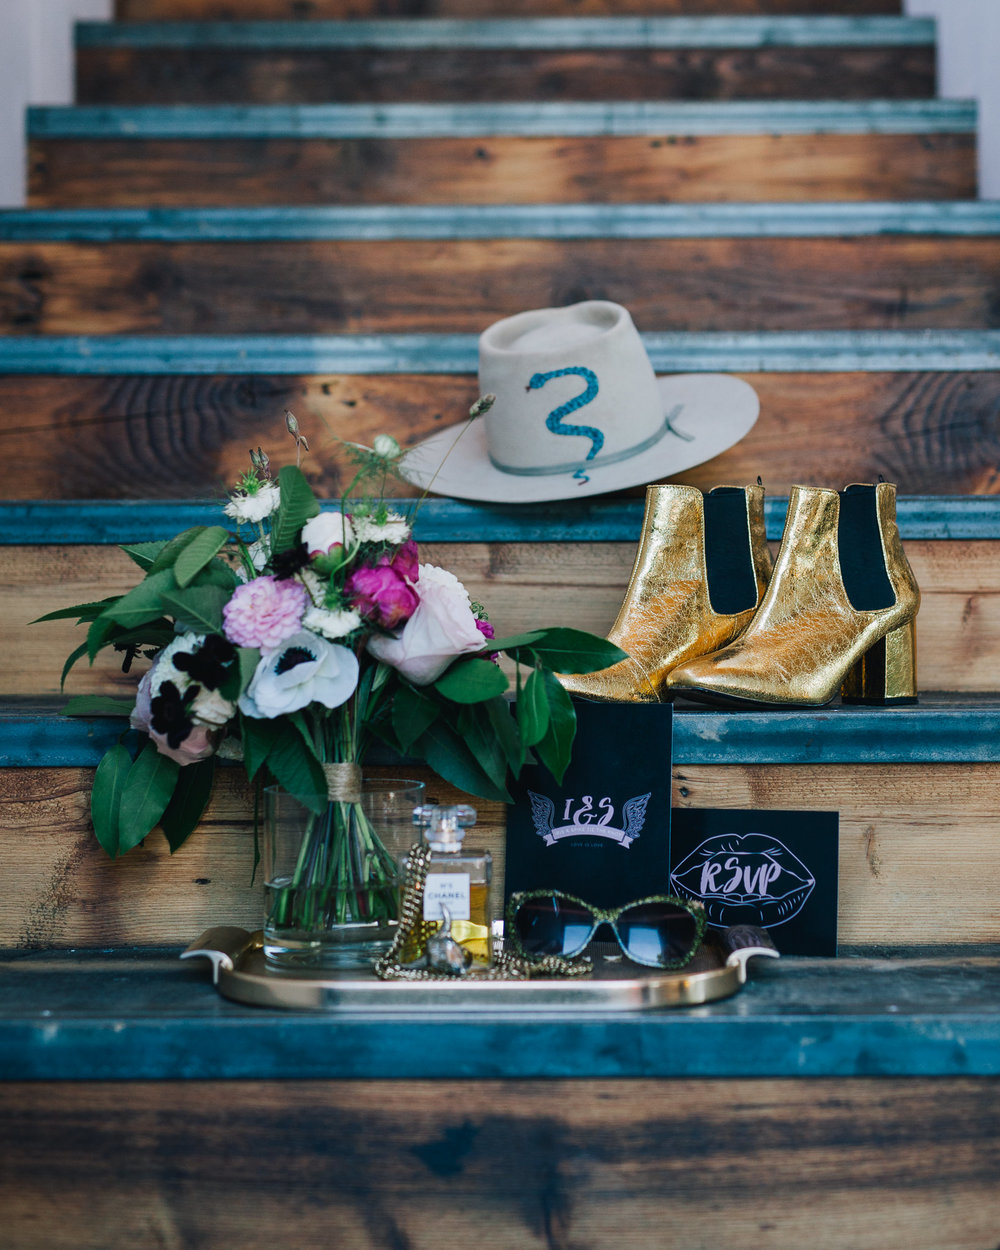 Rock'n'Roll Wedding Composition | Image courtesy of Adj Brown